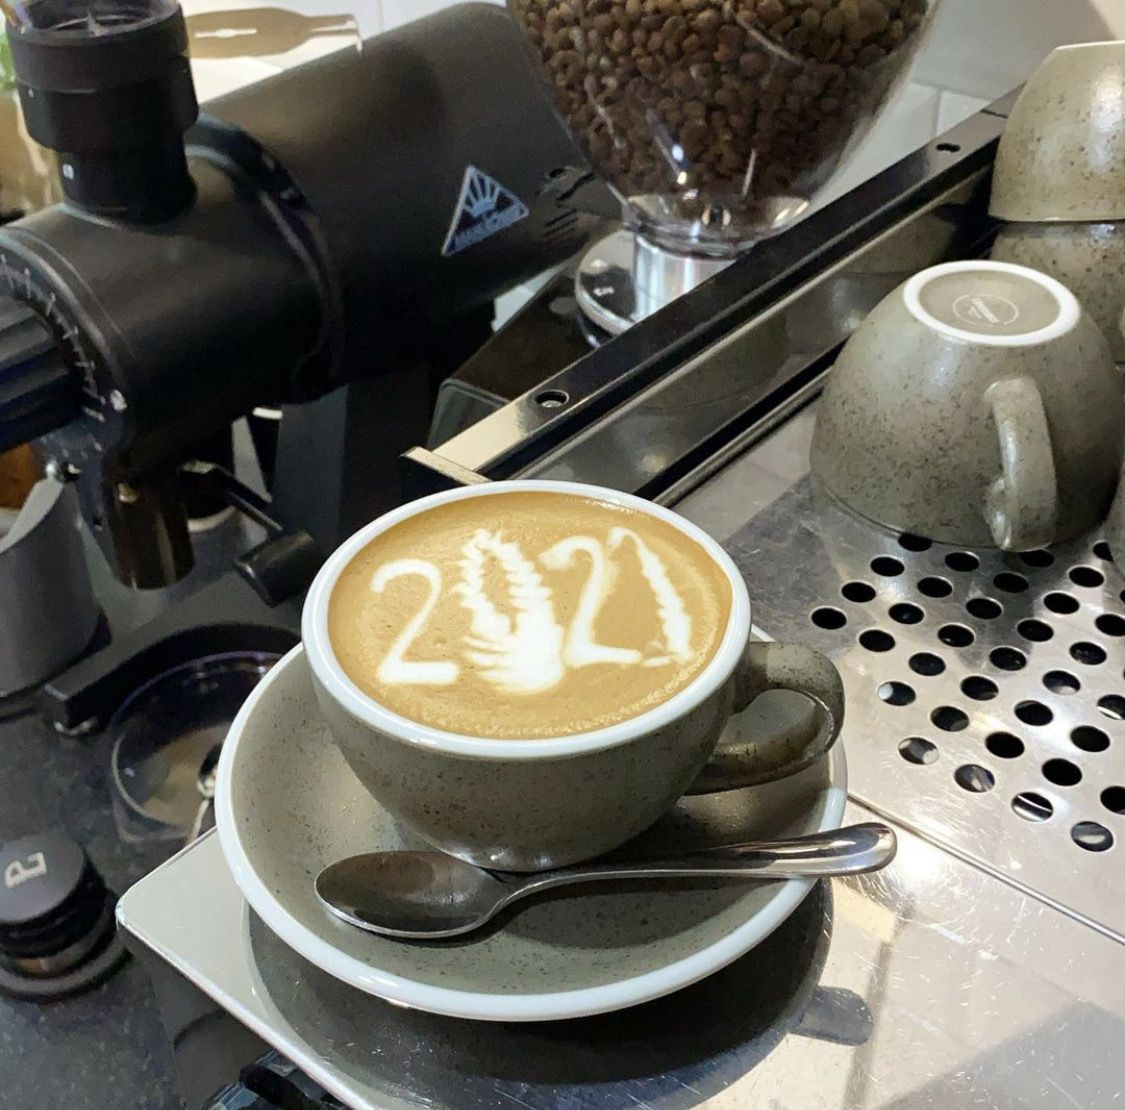 The Best New Hong Kong Cafes And Coffee Shops, Winter 2021 Edition